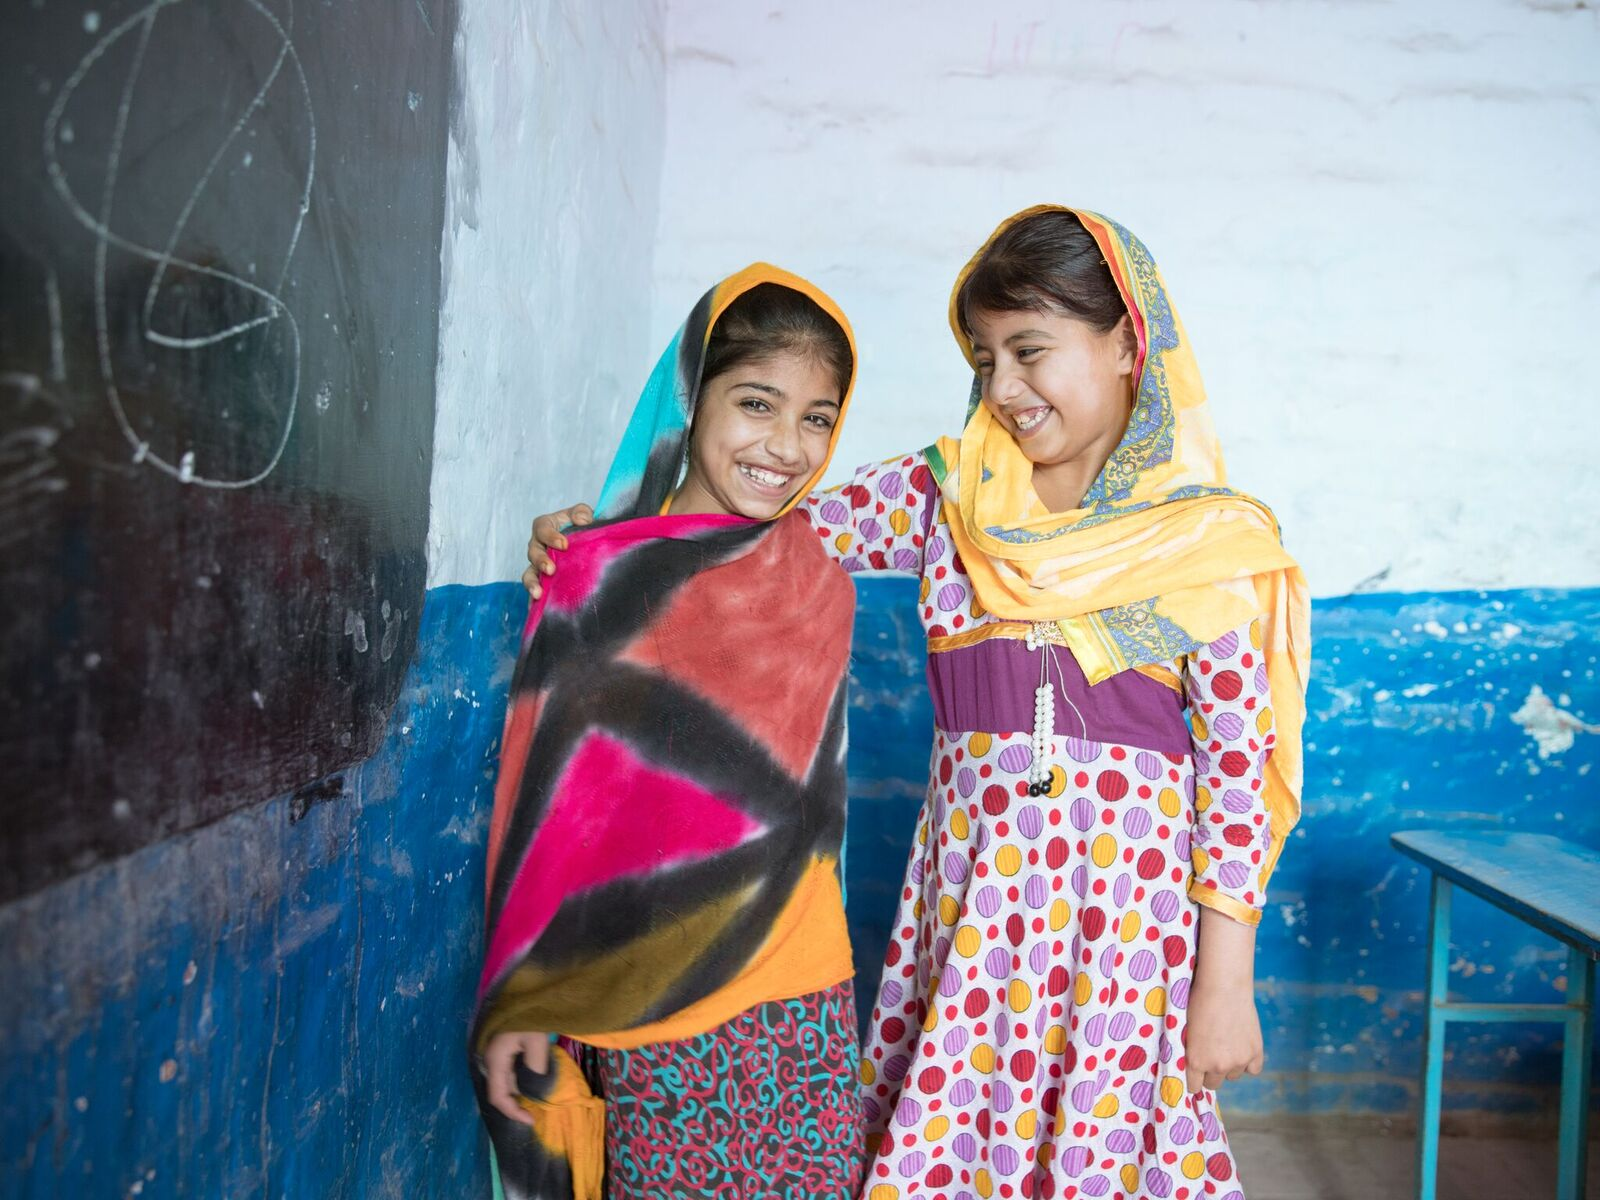 Two young girls wear colorful dresses and head scarfs in a classroom. They are smiling and have their arms around each other.